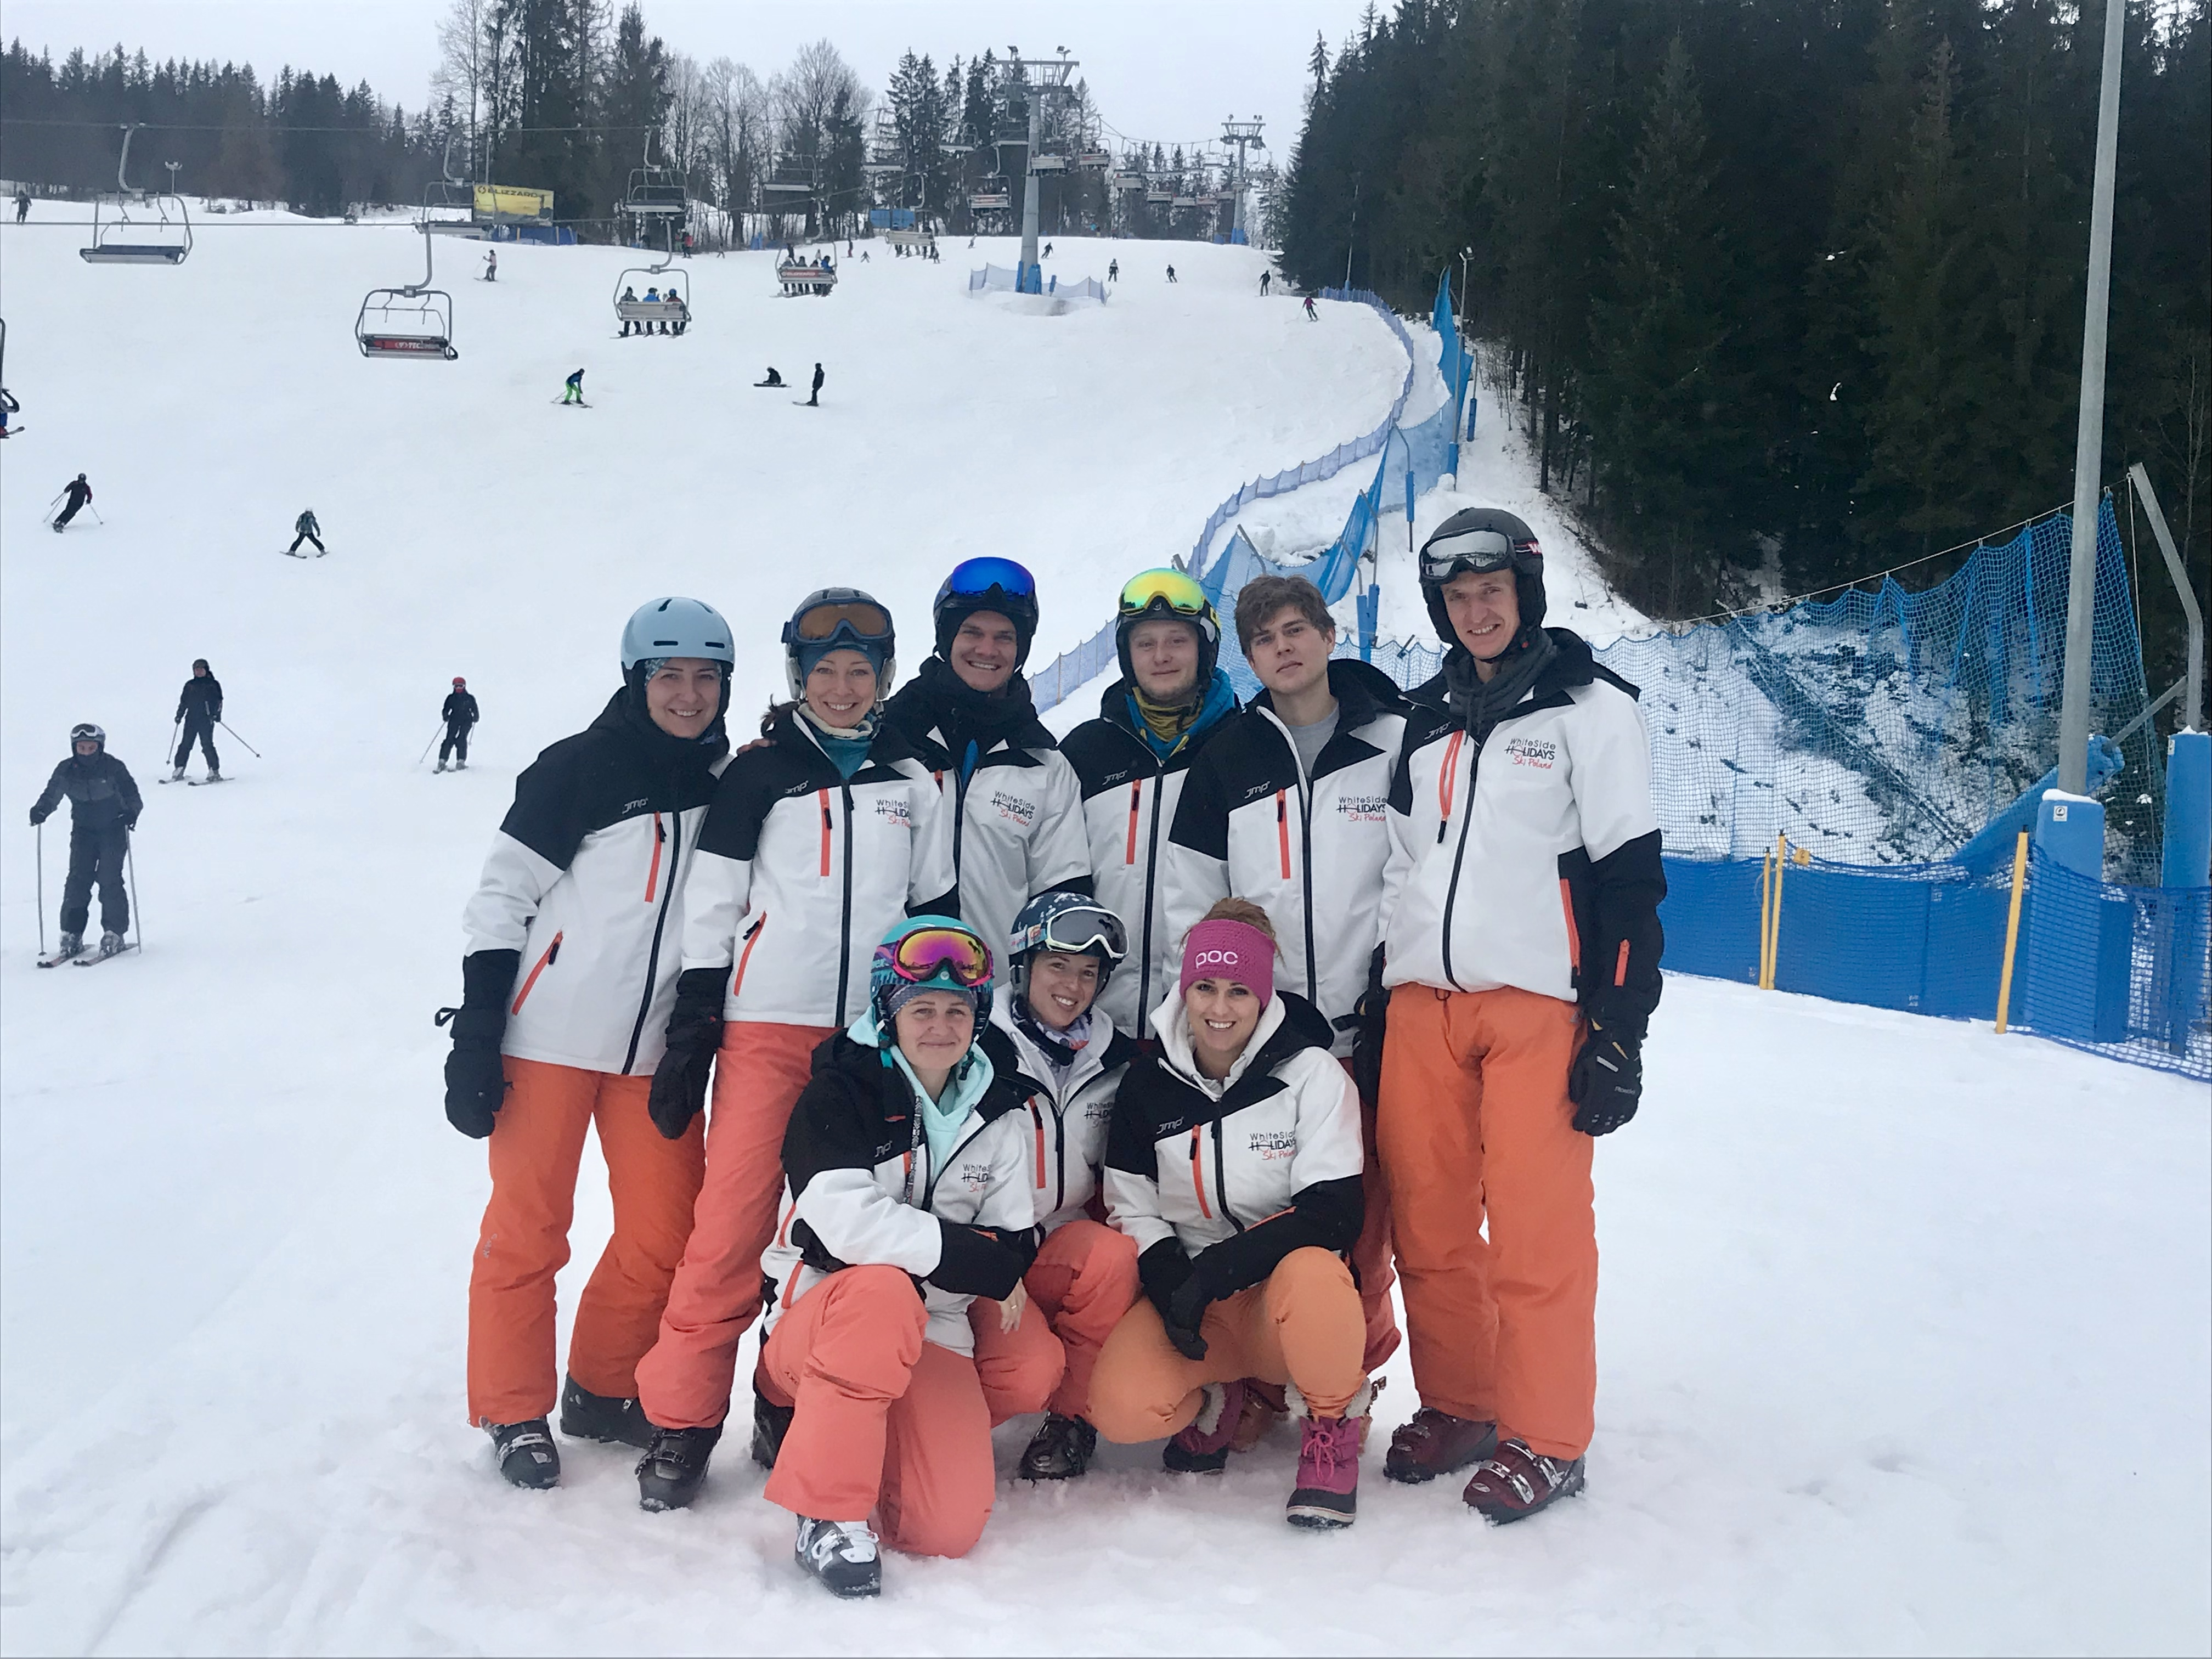 A quick team photo in Zakopane with some of our ski and snowboard instructors before the New Year's Eve celebrations begin